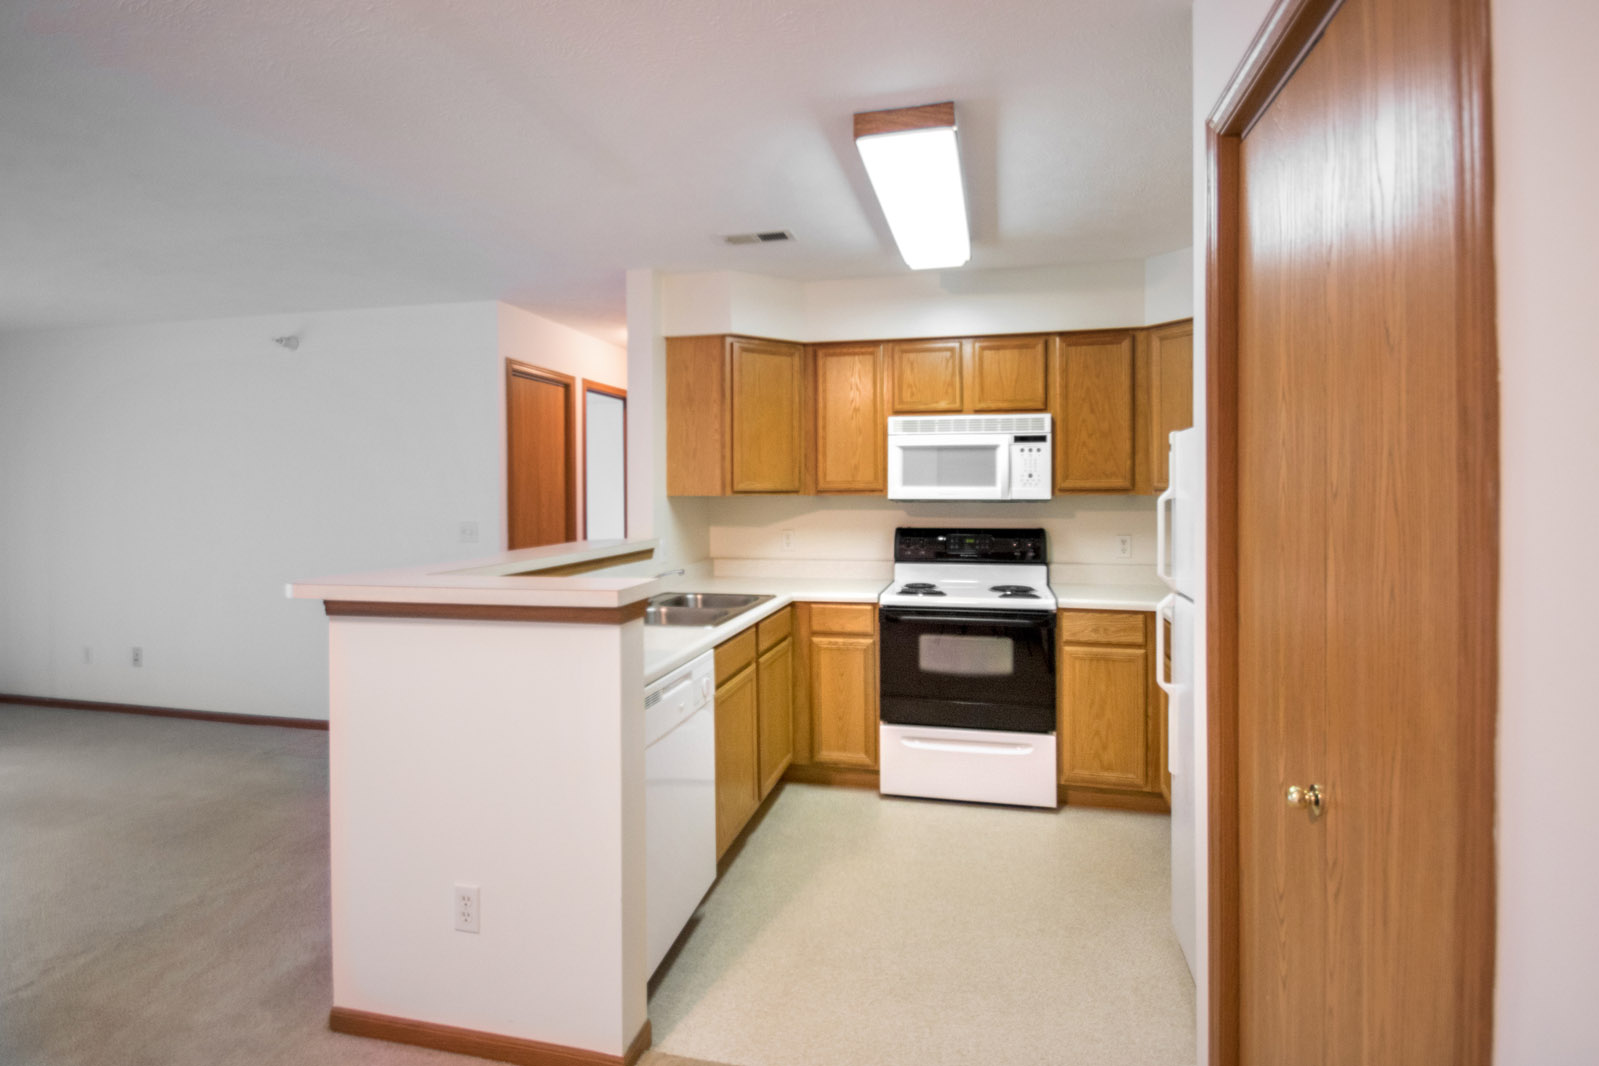 Fully-Equipped Kitchen at Northridge Apartments in Gretna, Nebraska